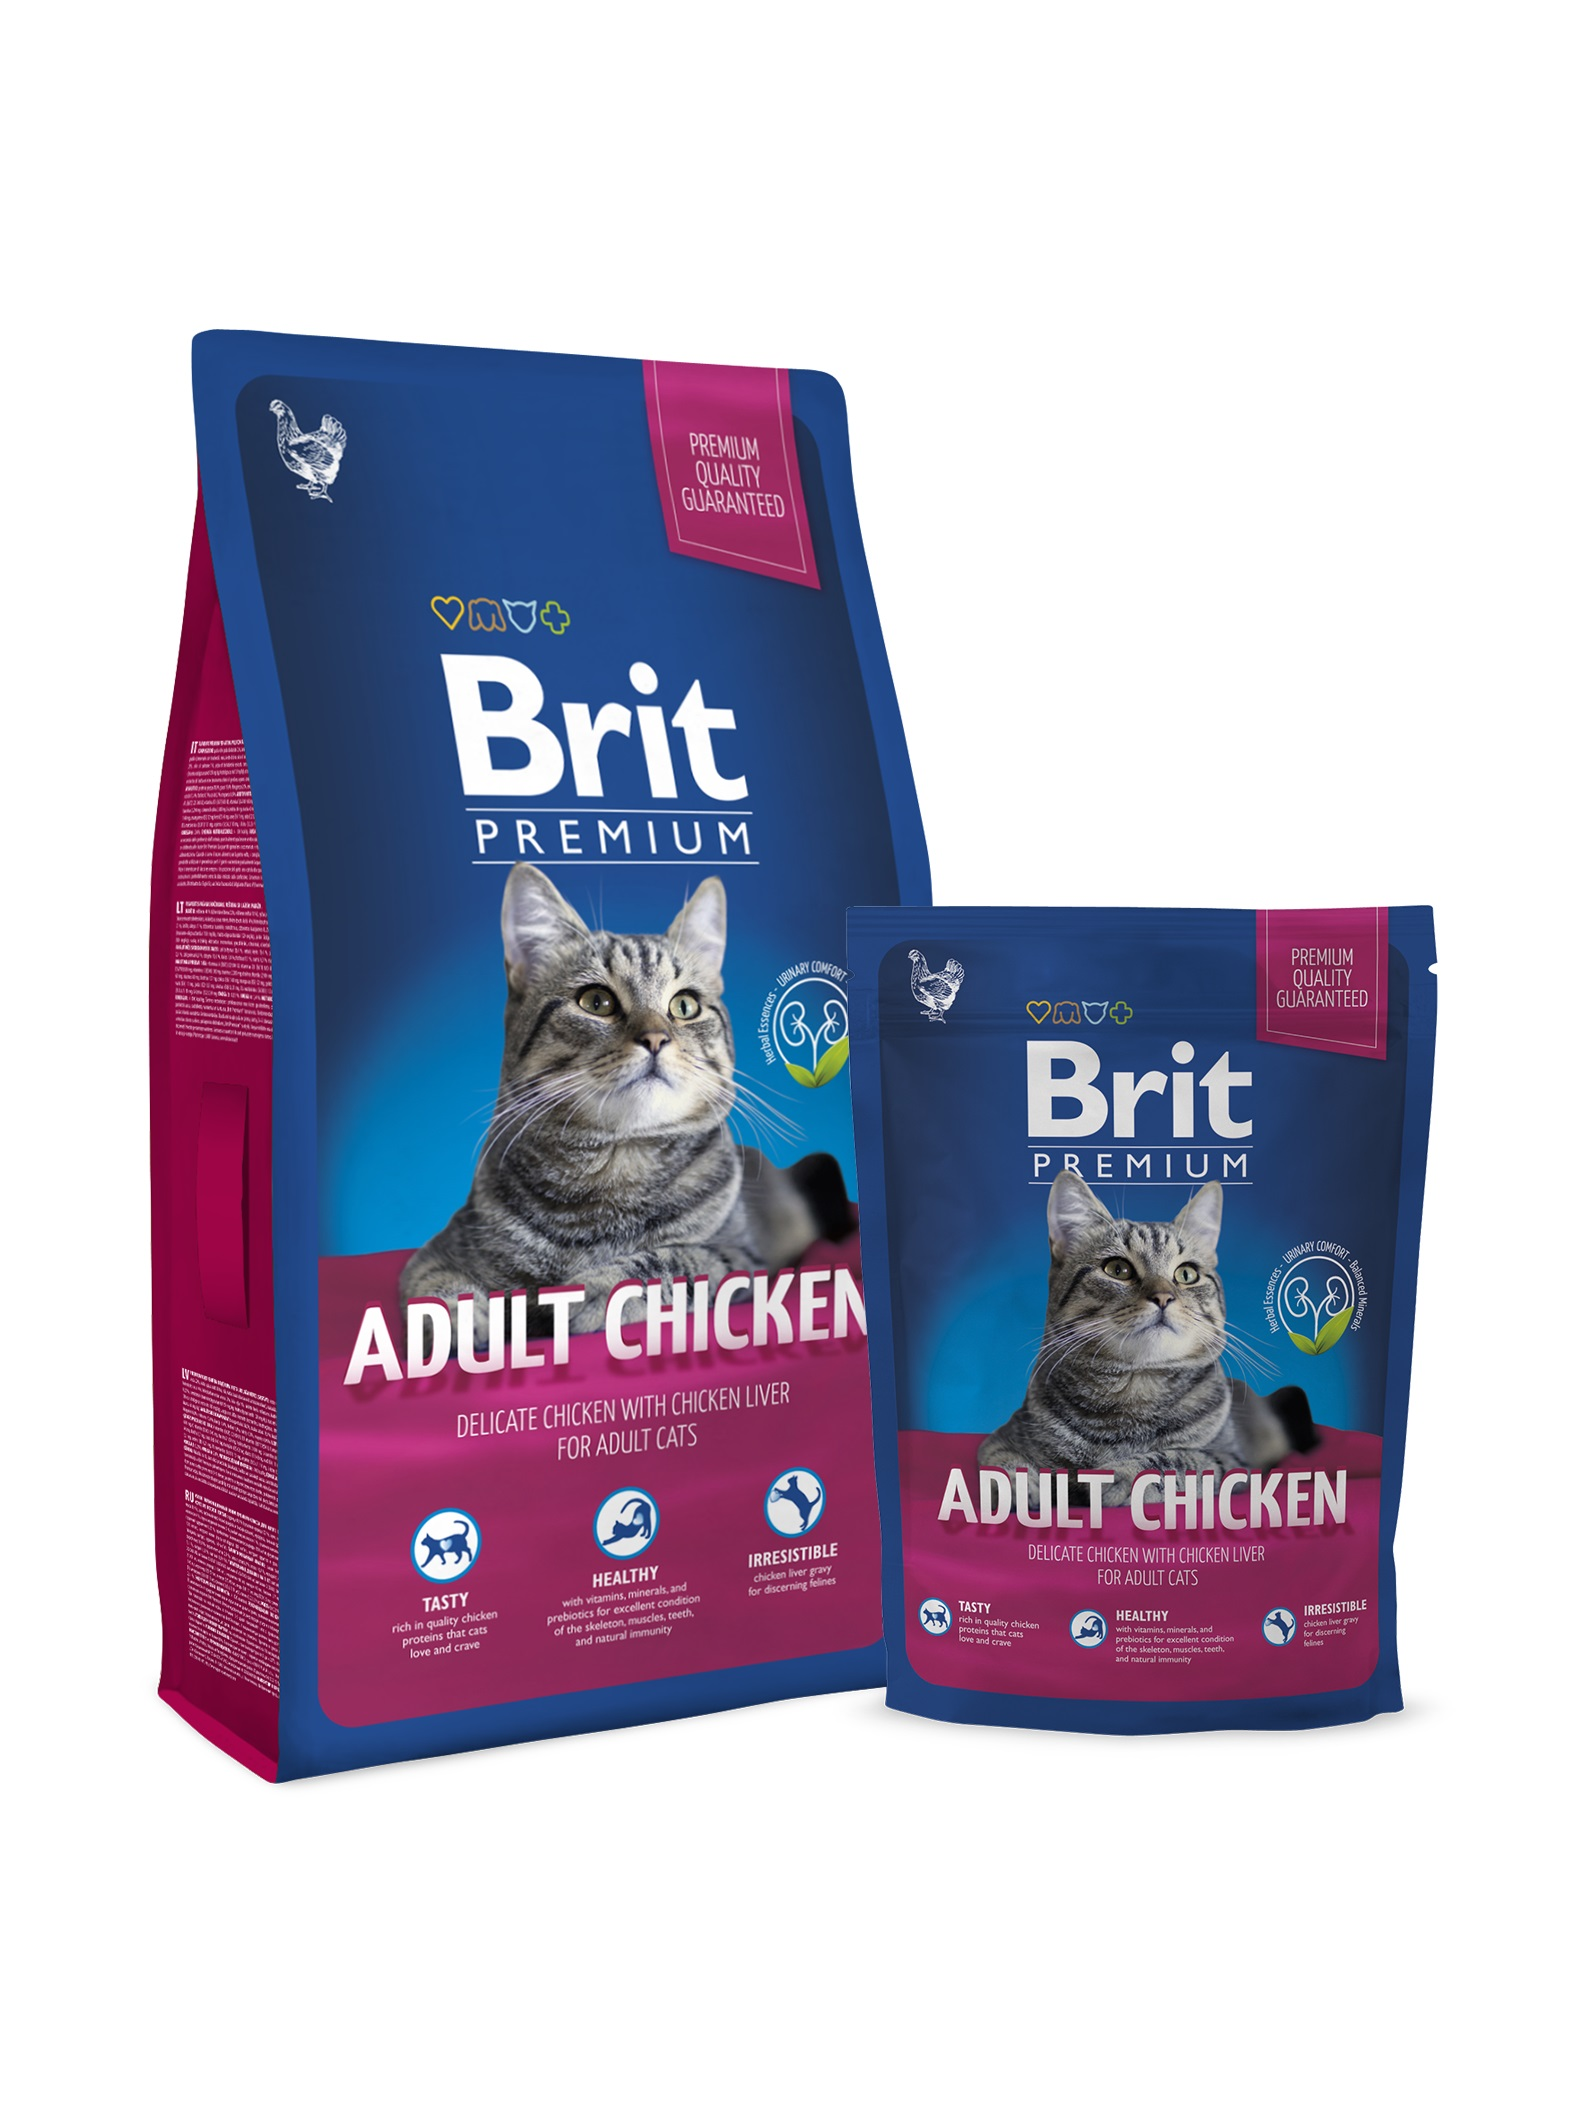 Brit Premium Cat Food Adult Chicken - Pet Food - Pet Store - Pet supplies